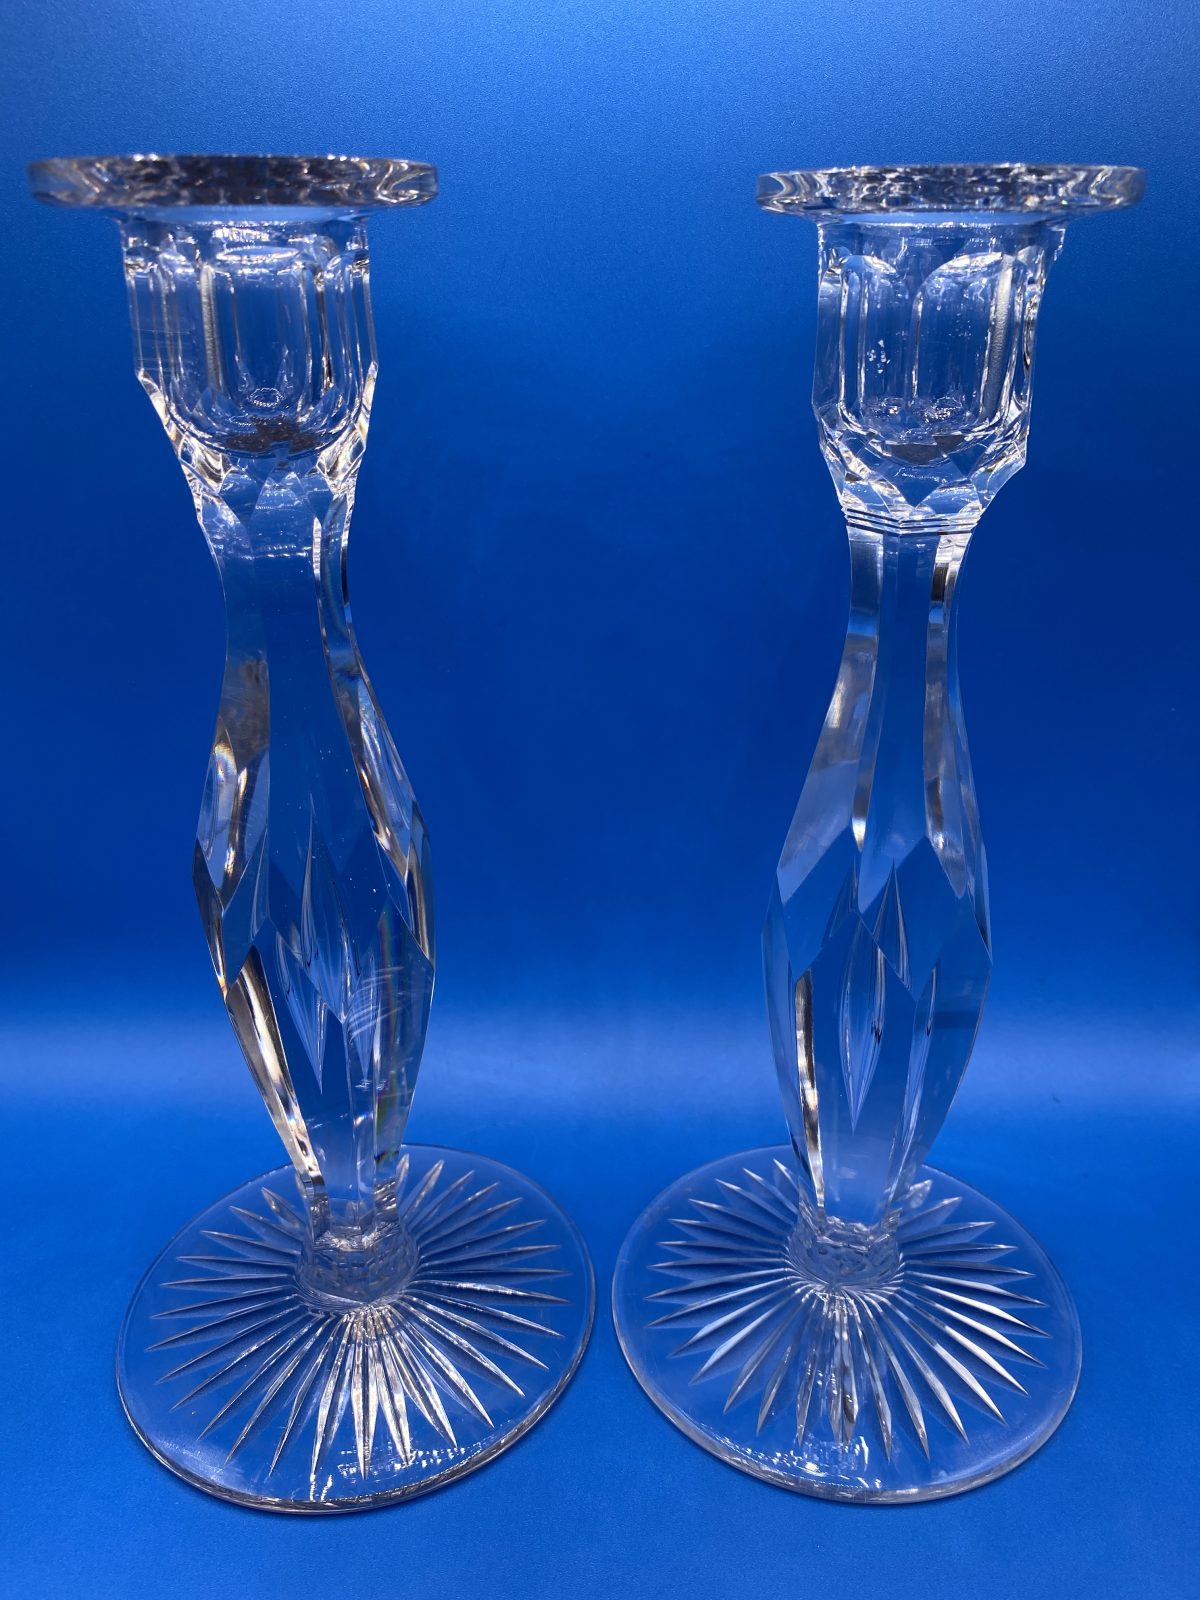 G1 - A Large Pair of Heavy Facet Cut Crystal Candlesticks with decorative air bubble in stem, on star cut bases. C 1950.  £95